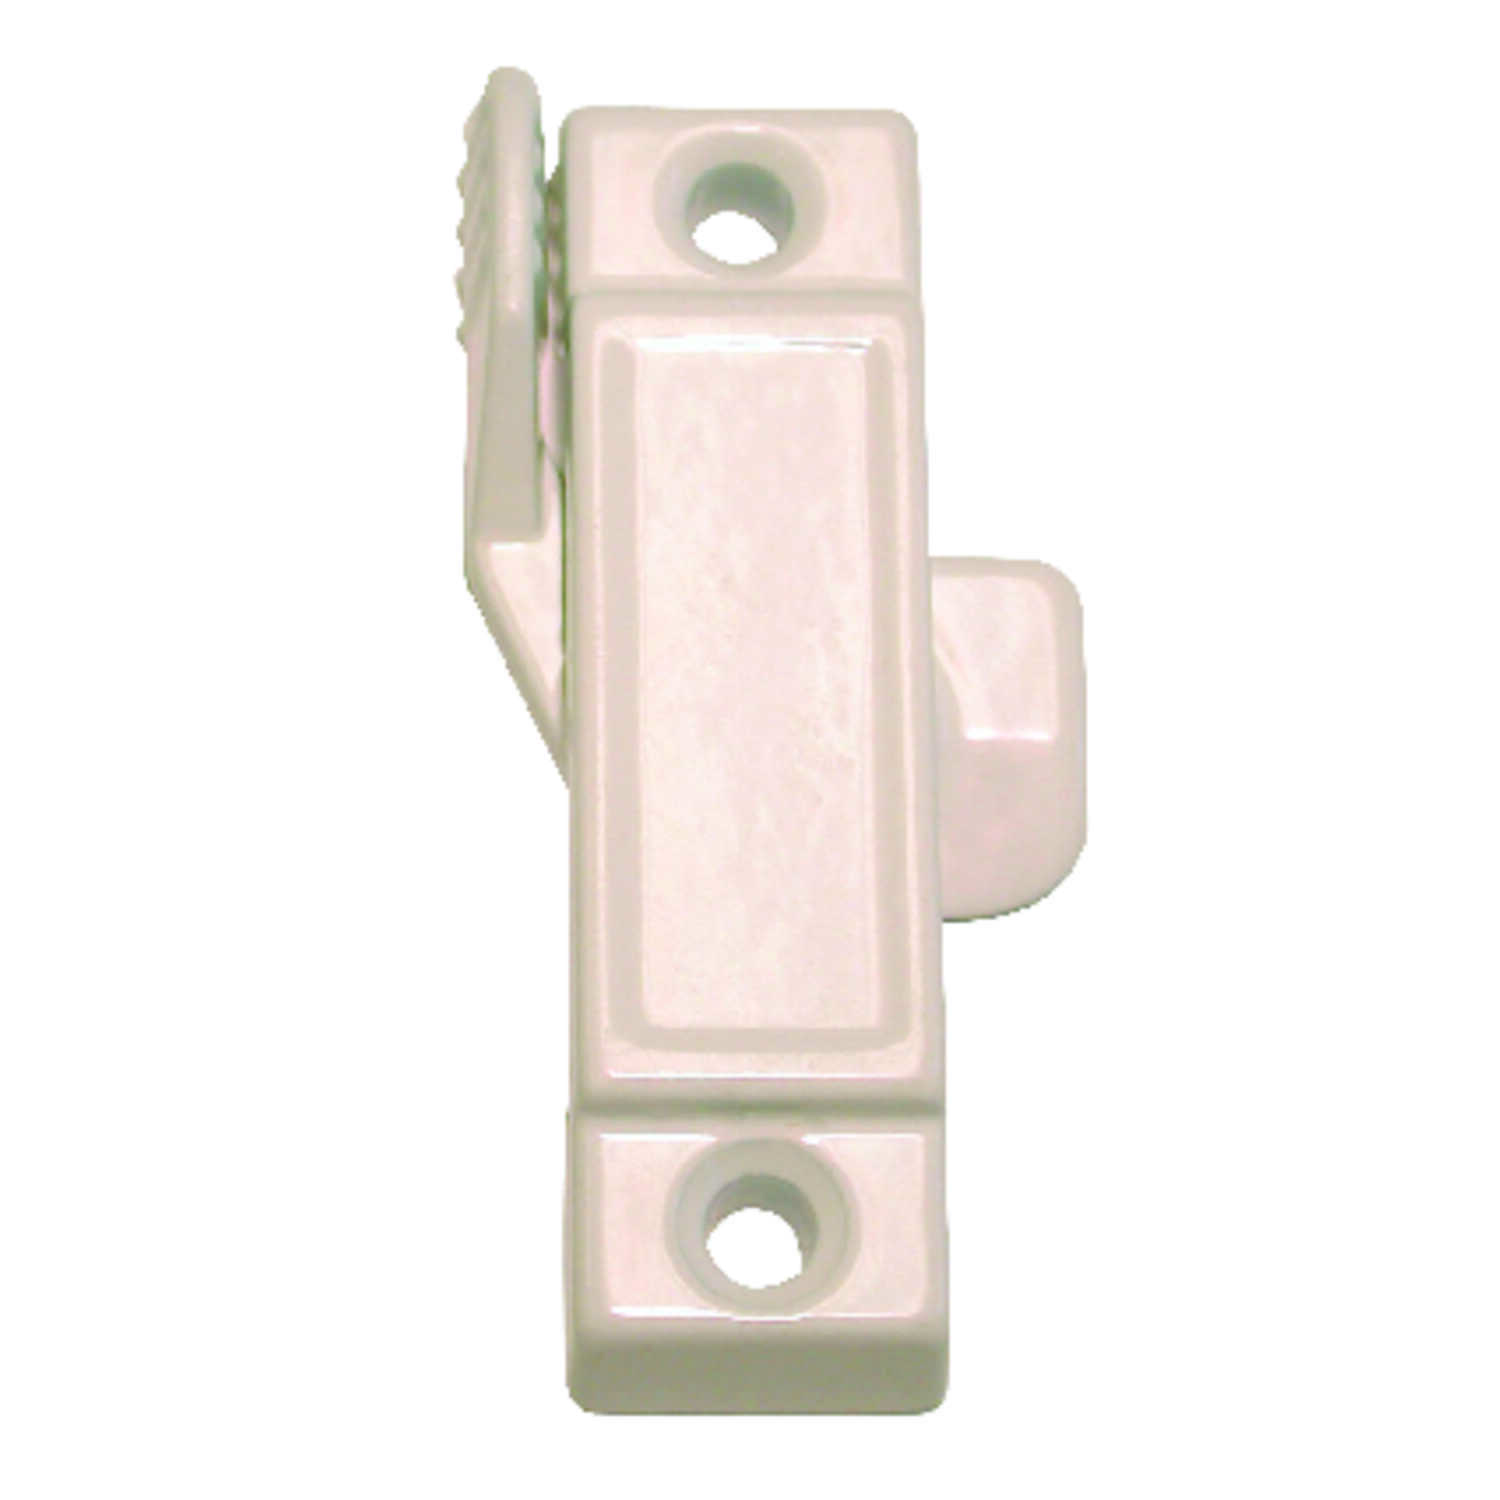 Barton Kramer  White  Die-Cast  Window Latch  25/32 in. W x 2-15/16 in. L 1 pk